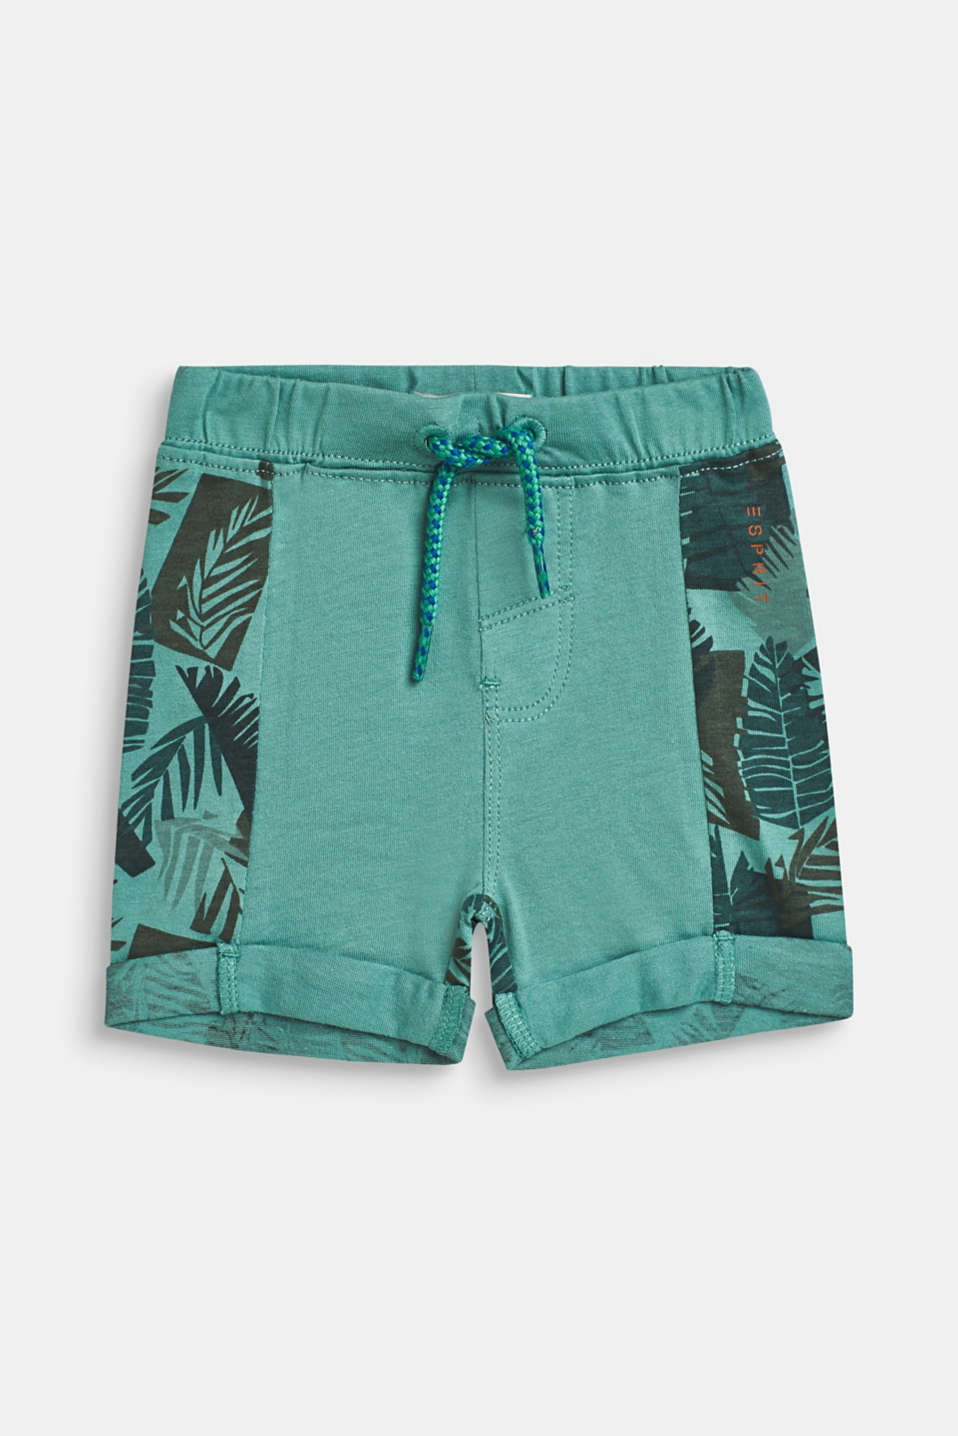 Esprit - Sweat-Shorts mit Tropical Print, 100% Baumwolle